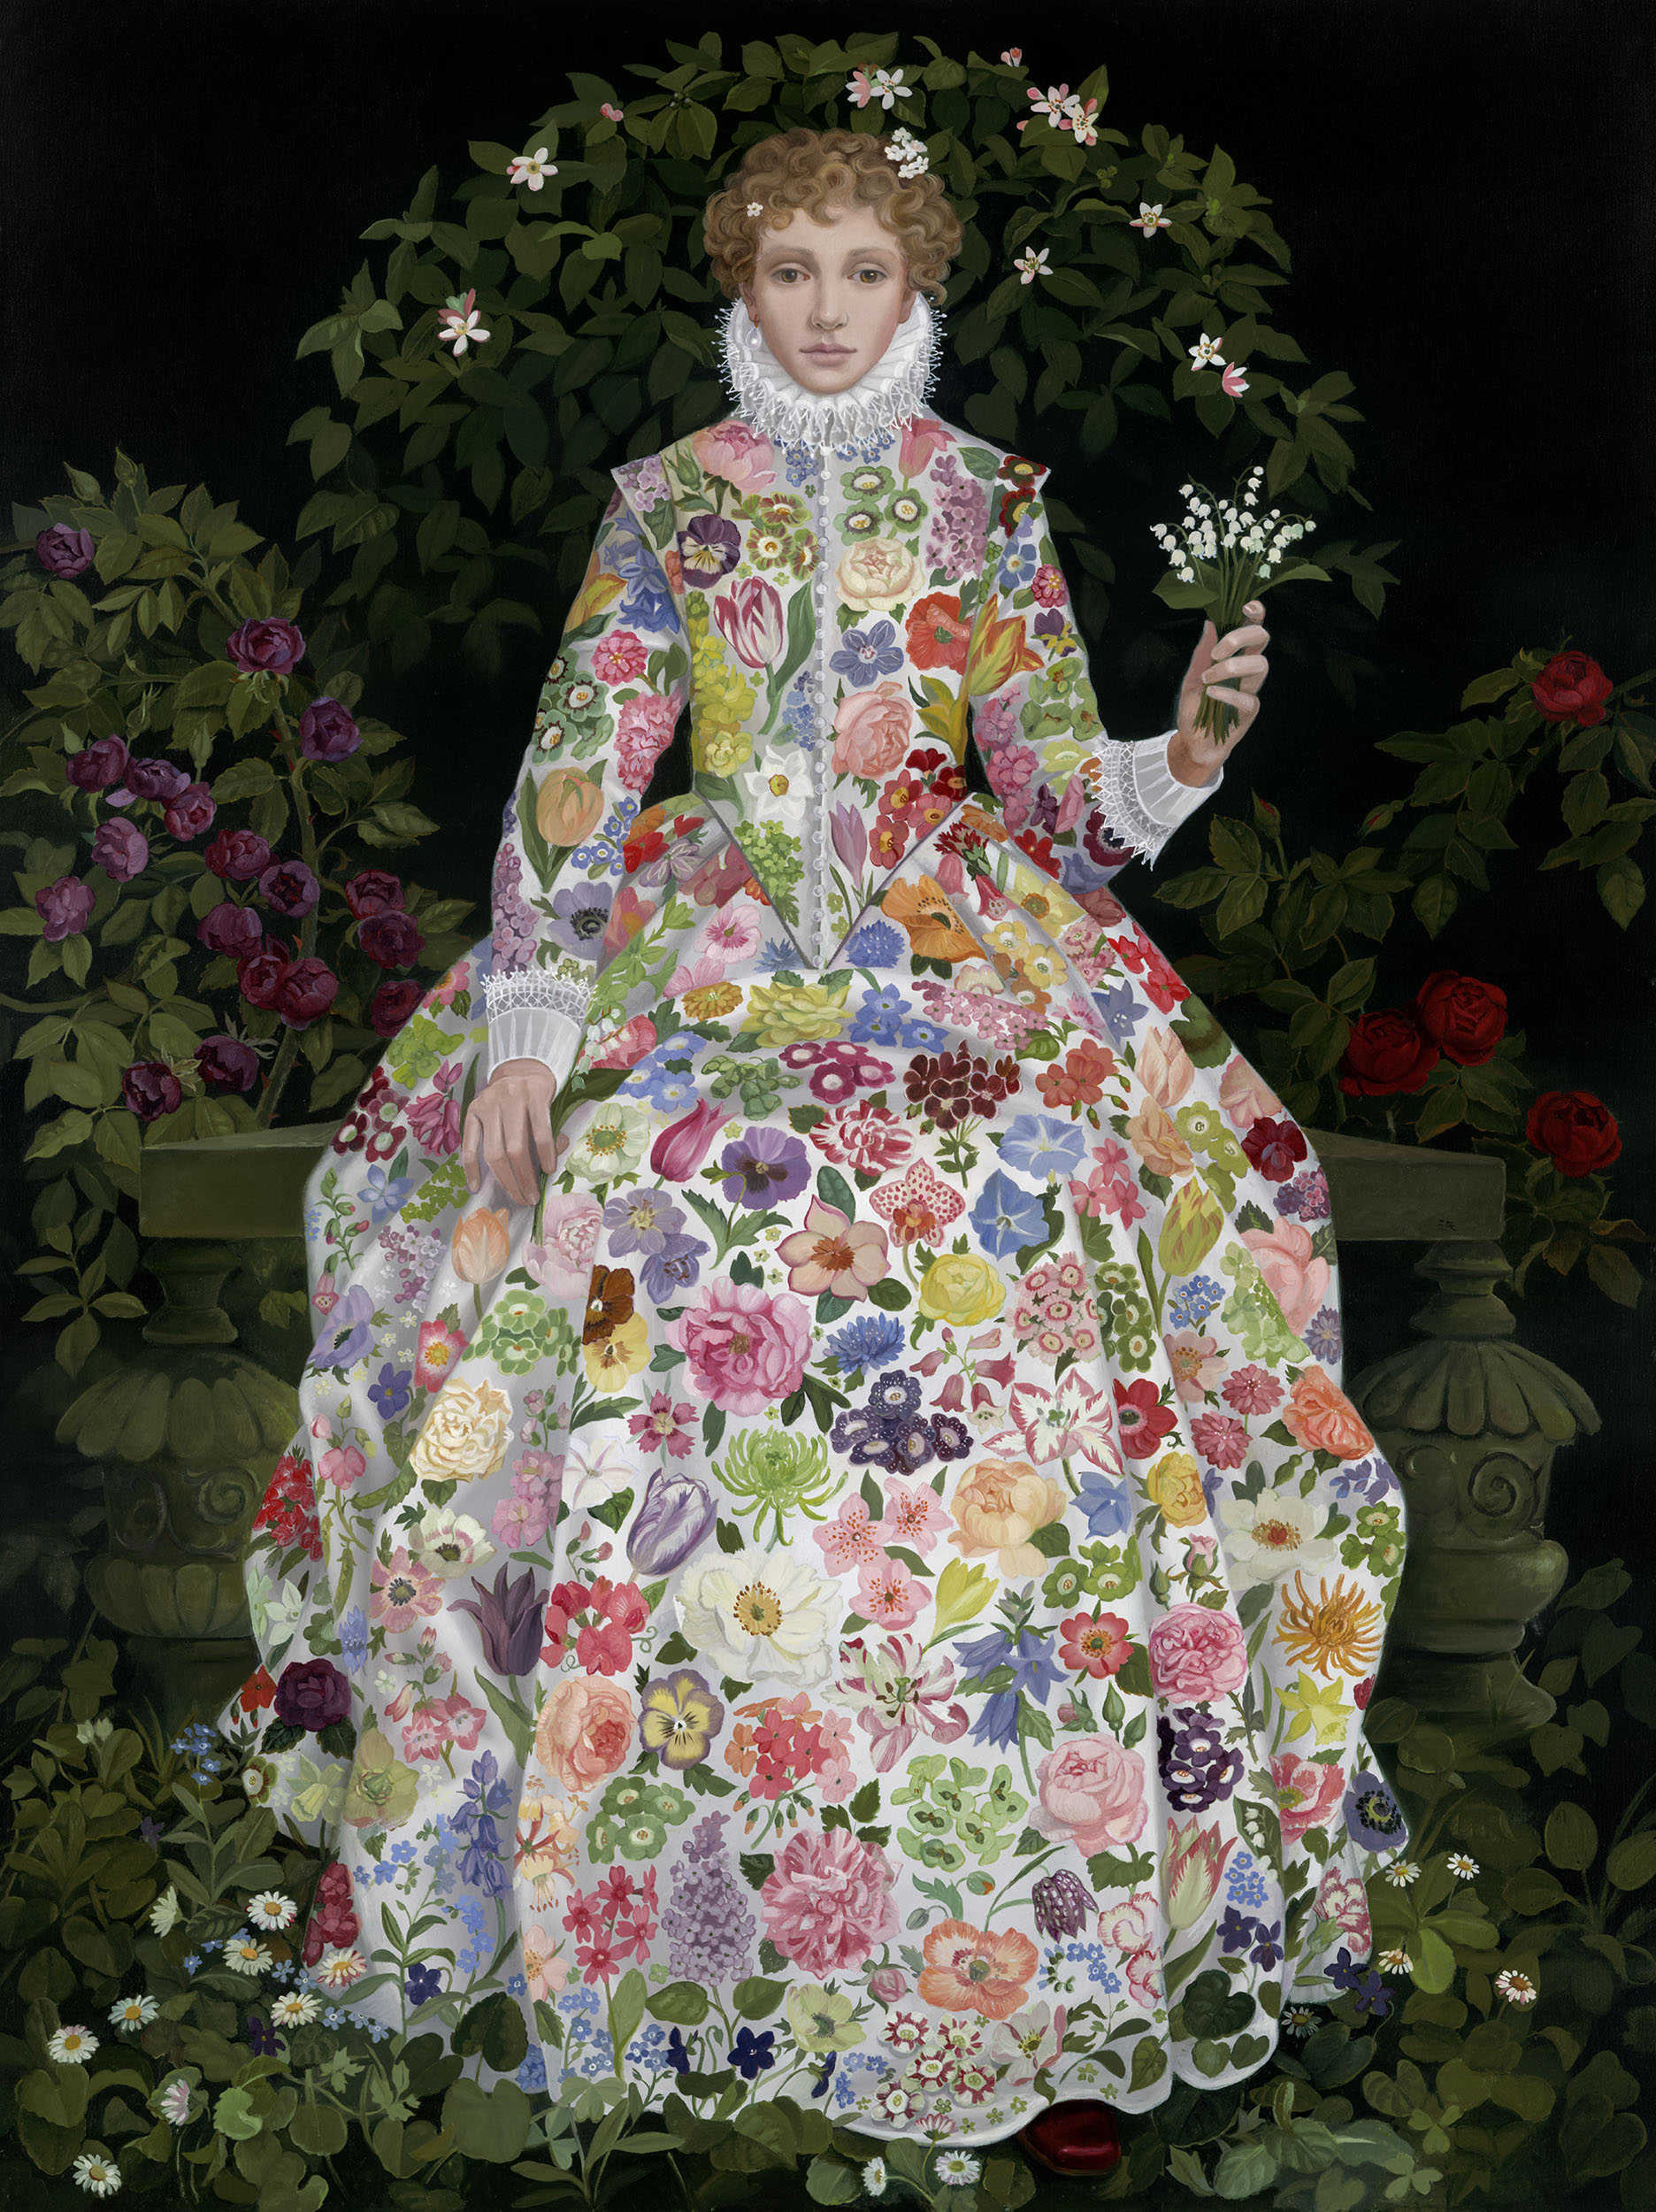 Floralia by Lizzie Riches